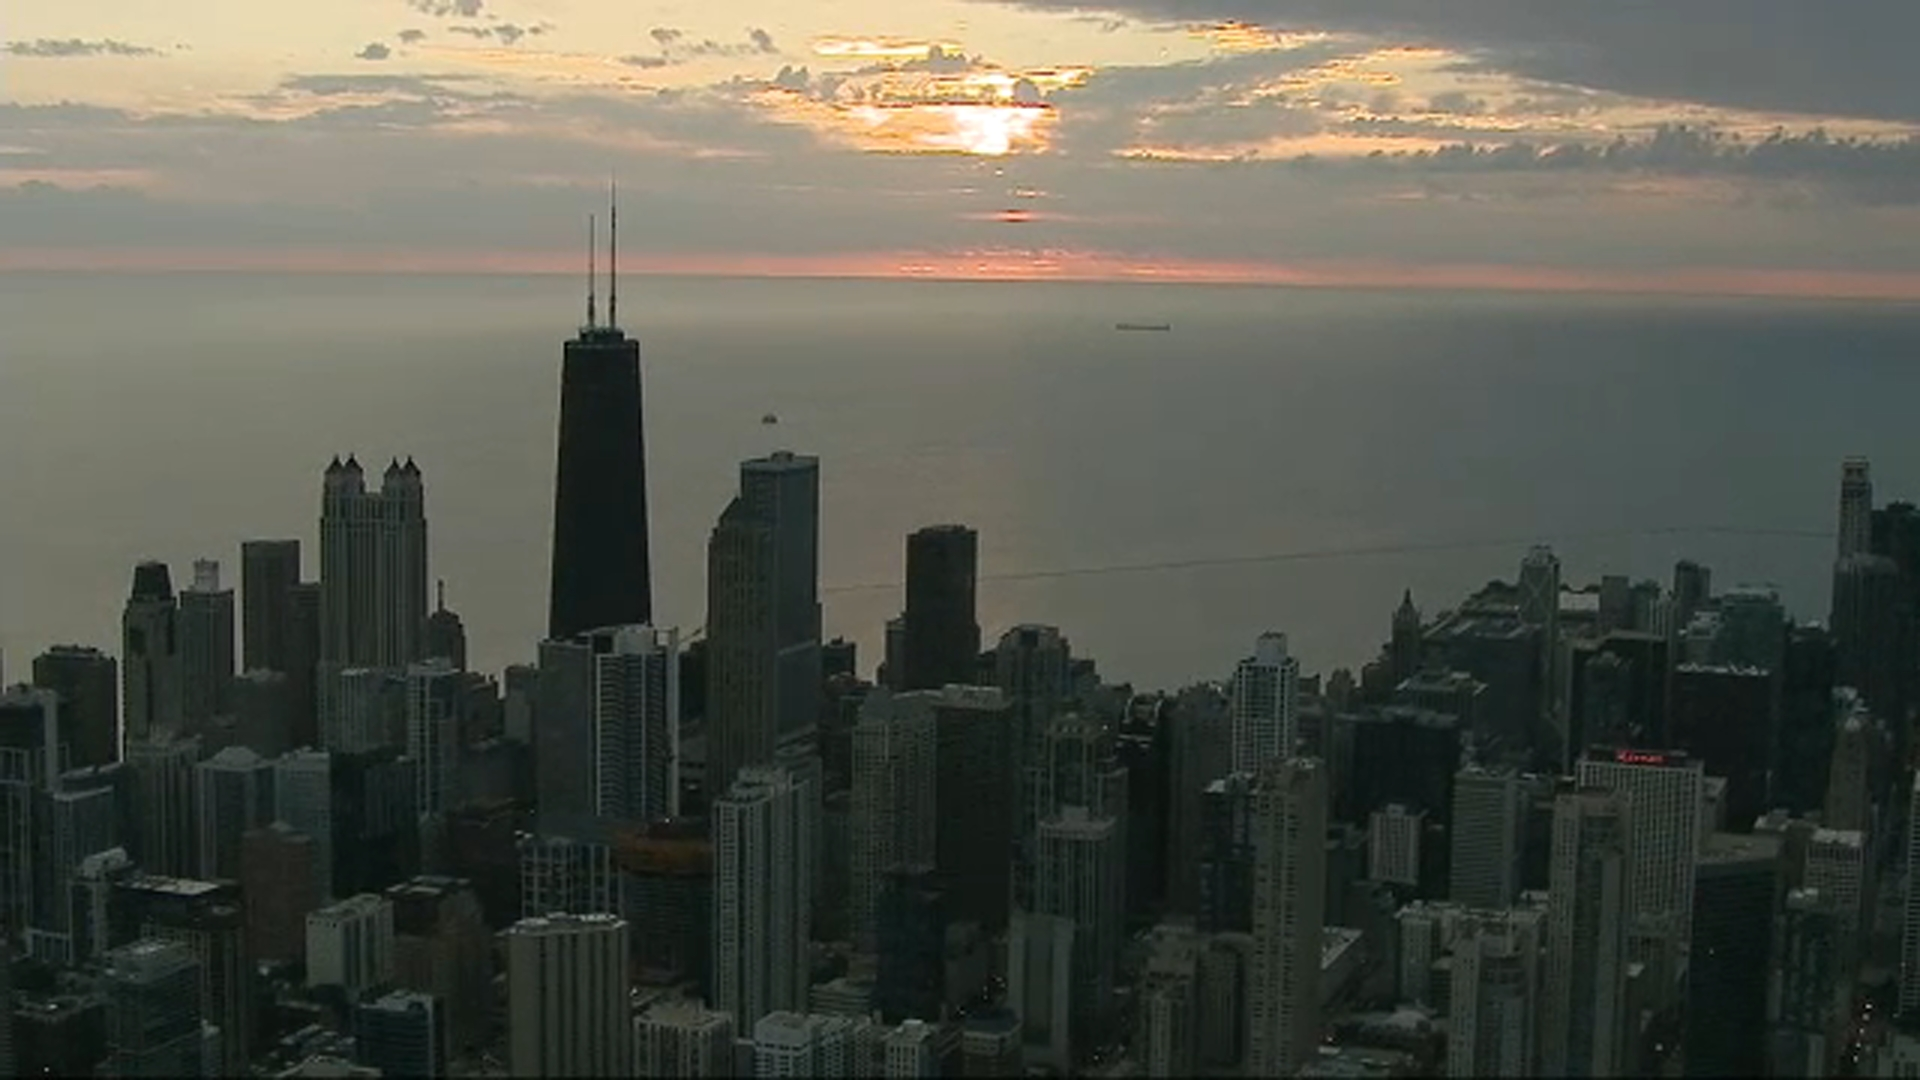 Chicago Covid 19 Today Stay At Home Advisory Issued By Mayor Lori Lightfoot To Take Effect For 30 Days With New Restrictions On Gatherings Meetings Abc7 Chicago